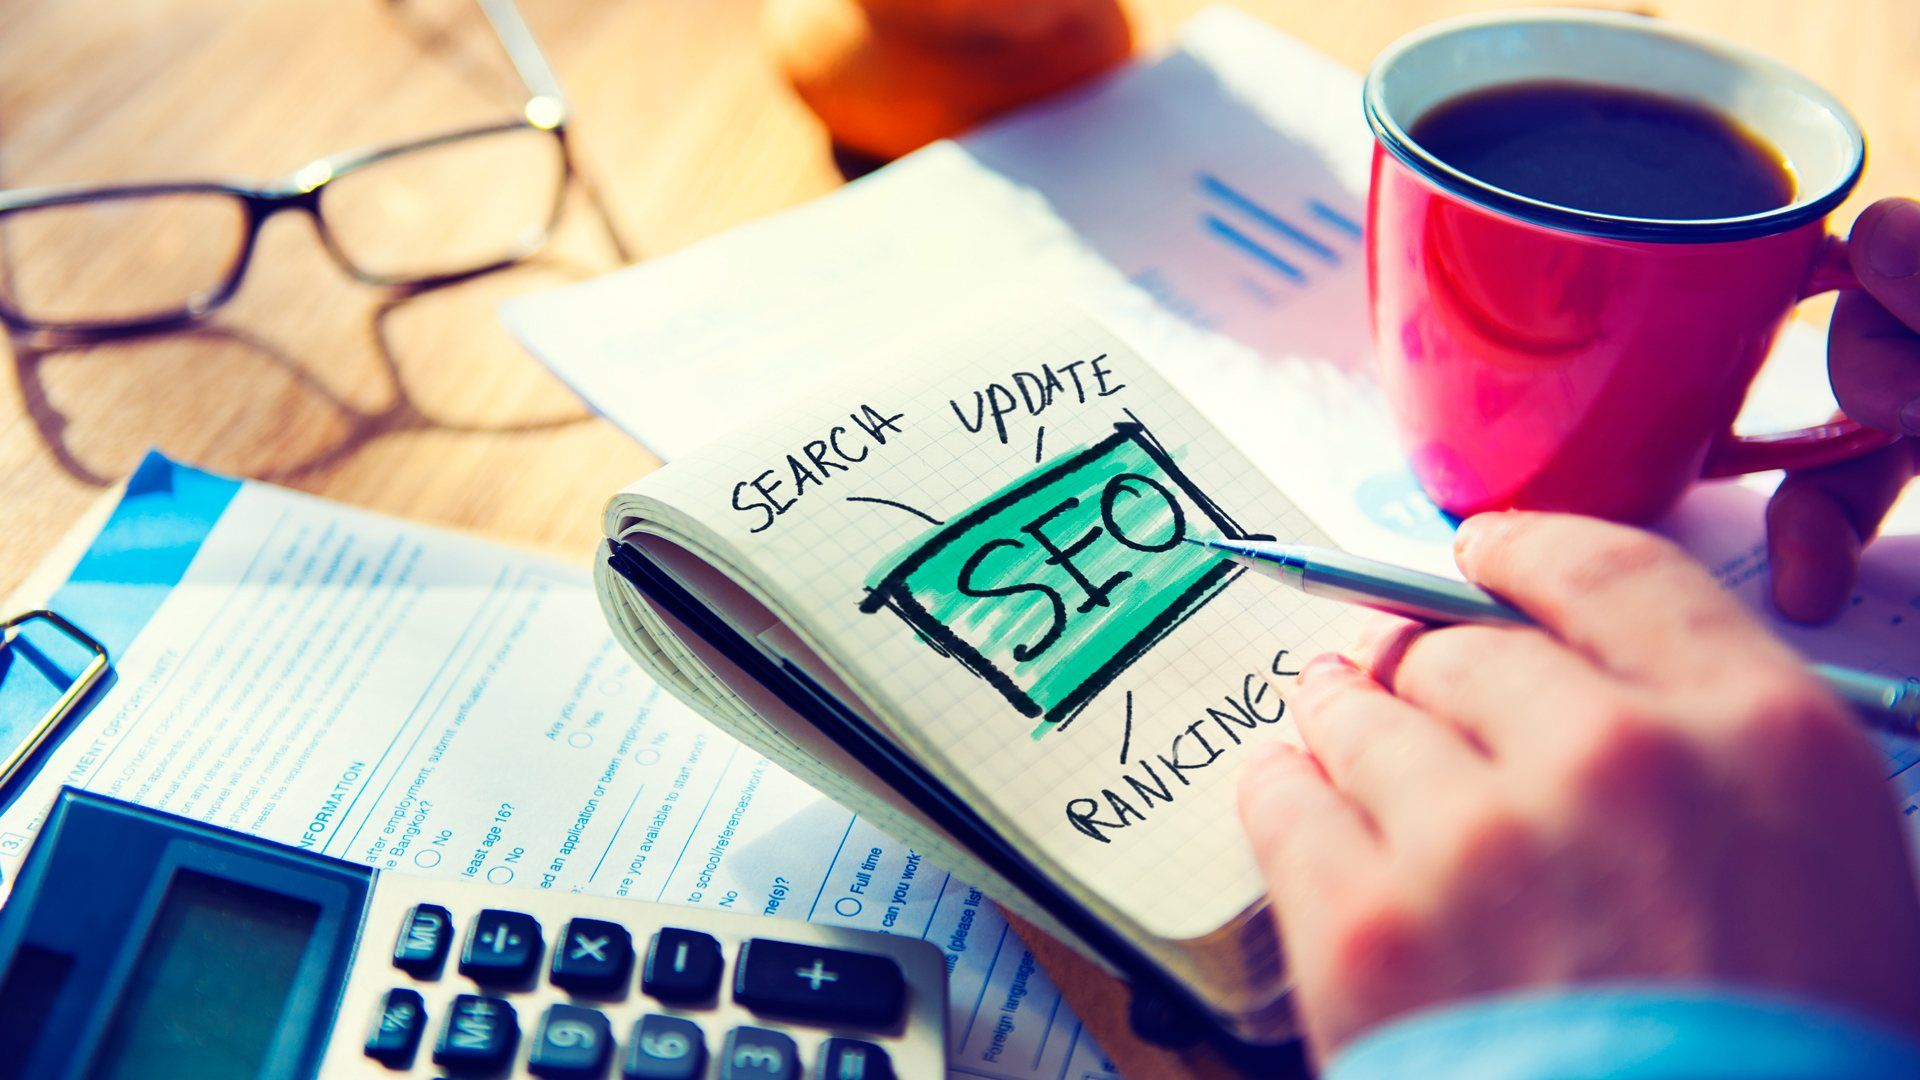 Dropshipping SEO Services For Your Alidropship or Shopify